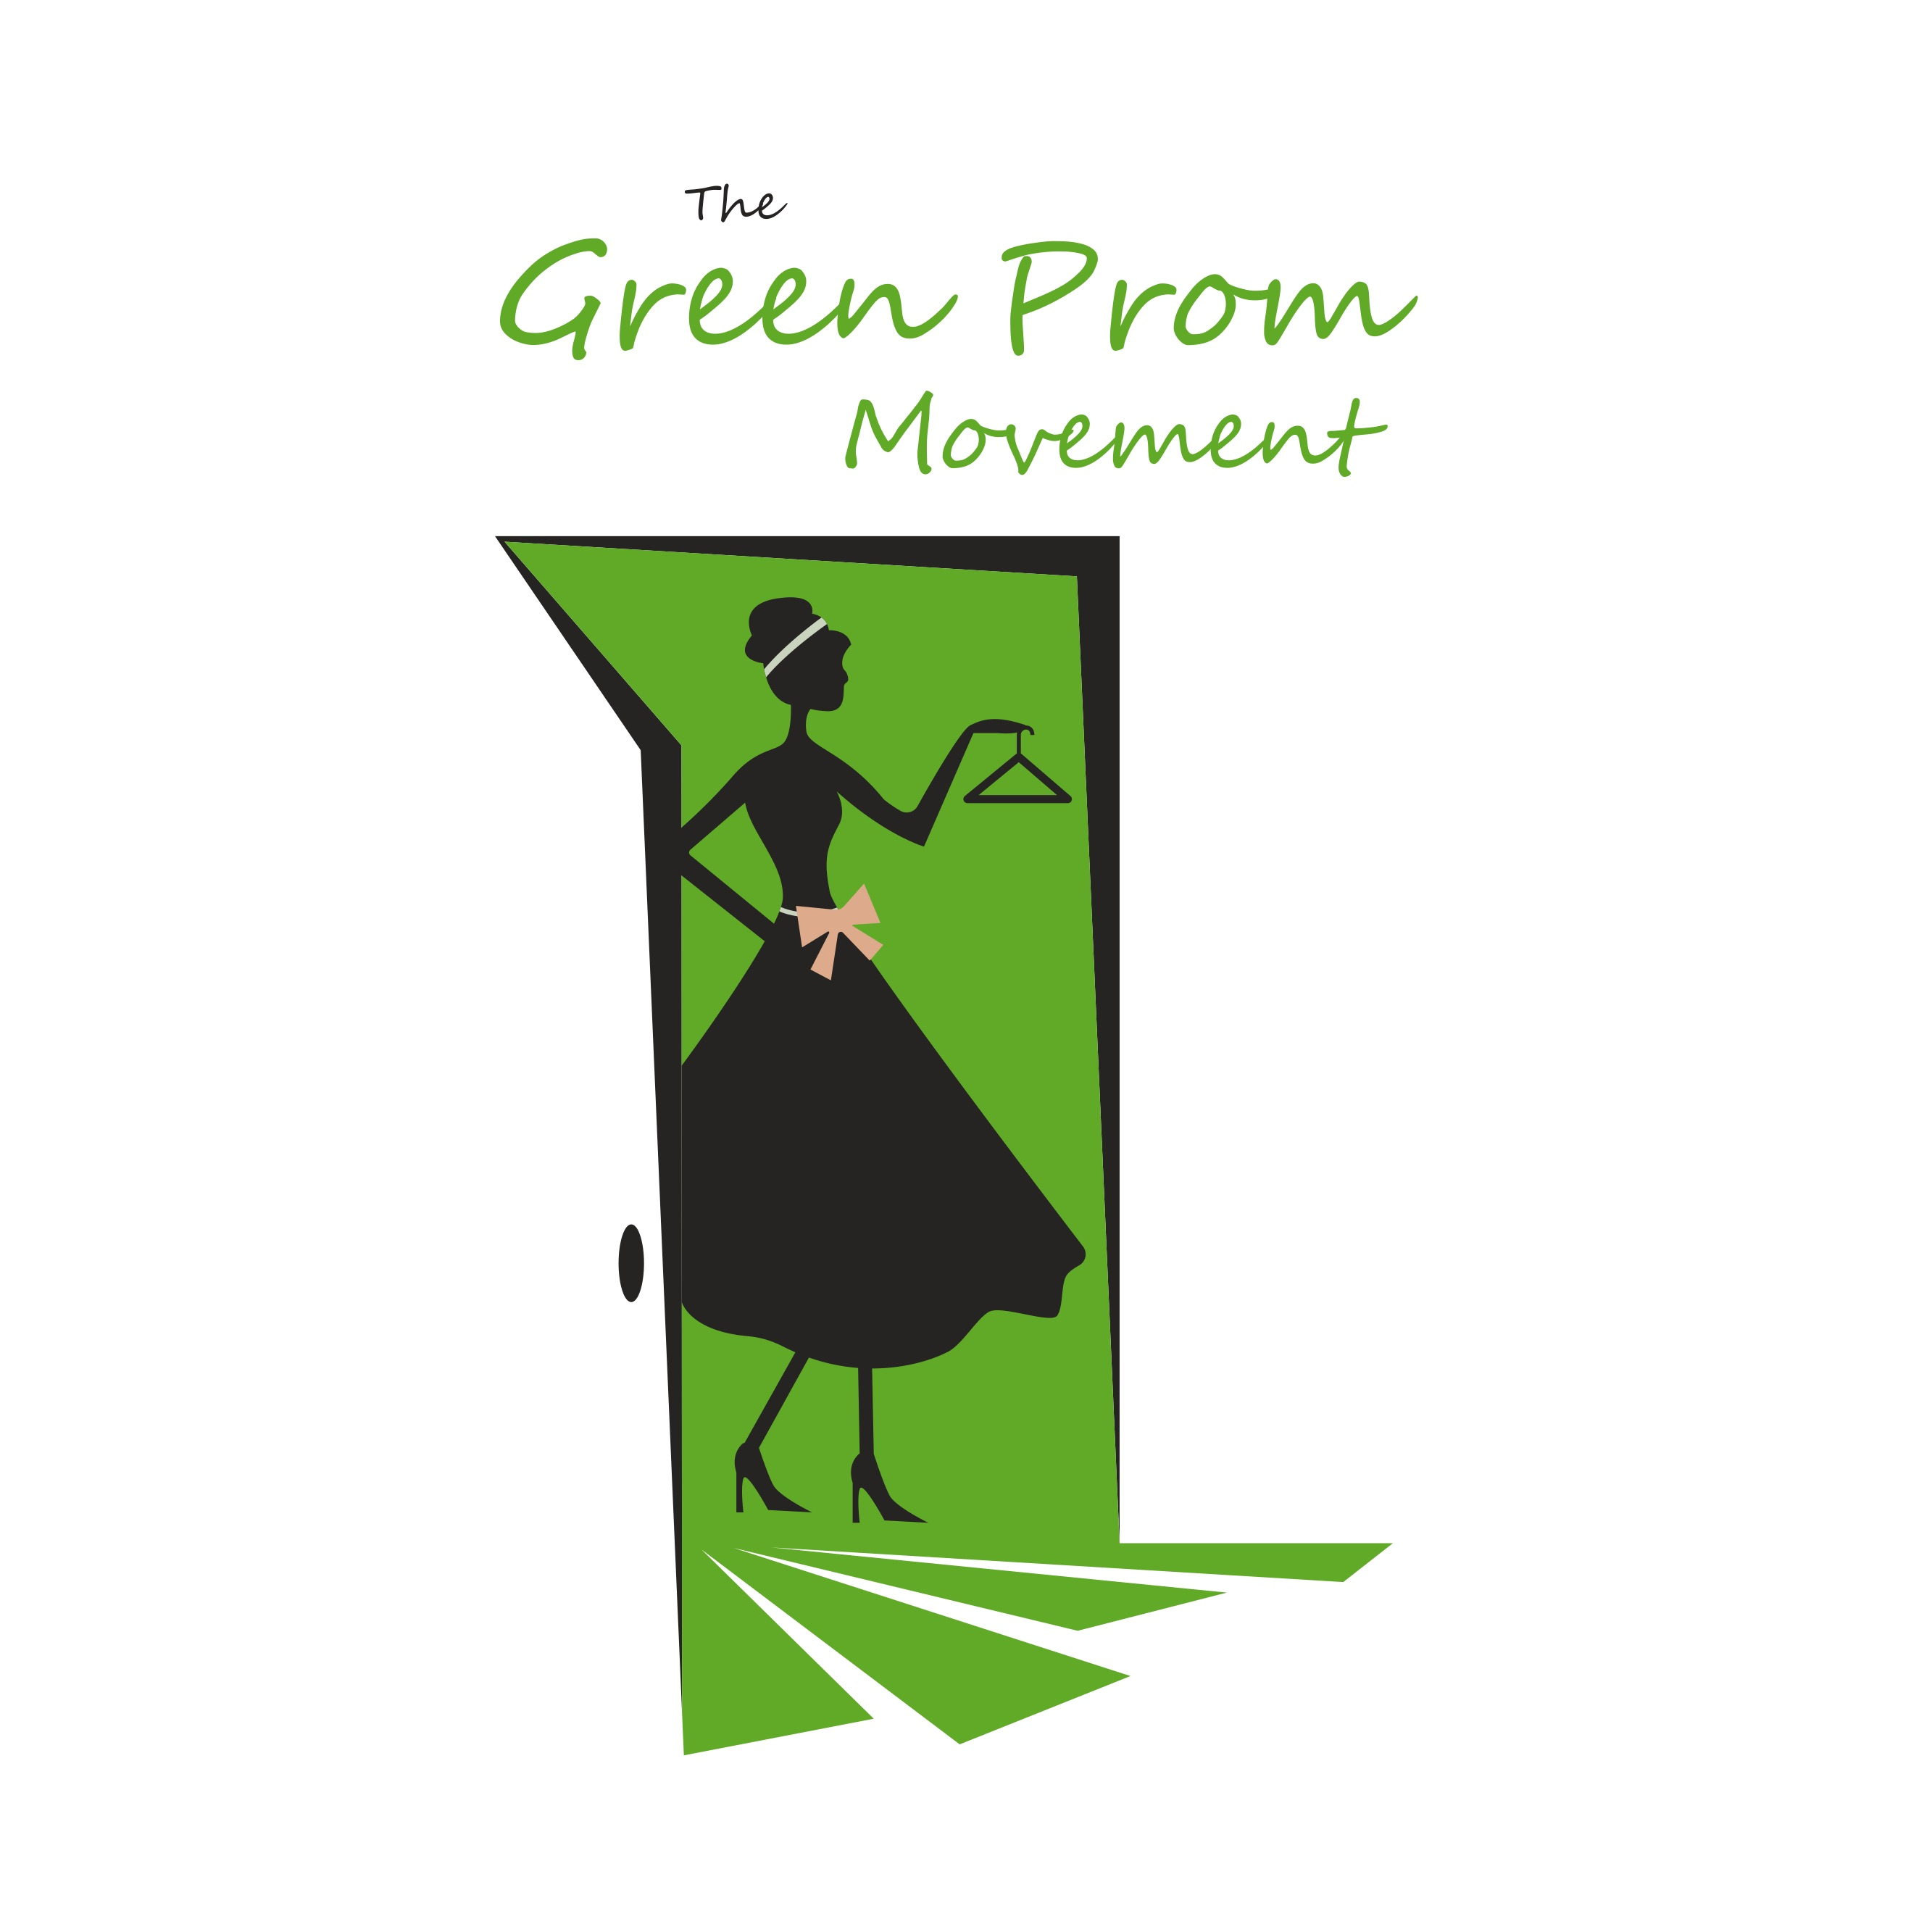 The Green Prom Movement Foundation